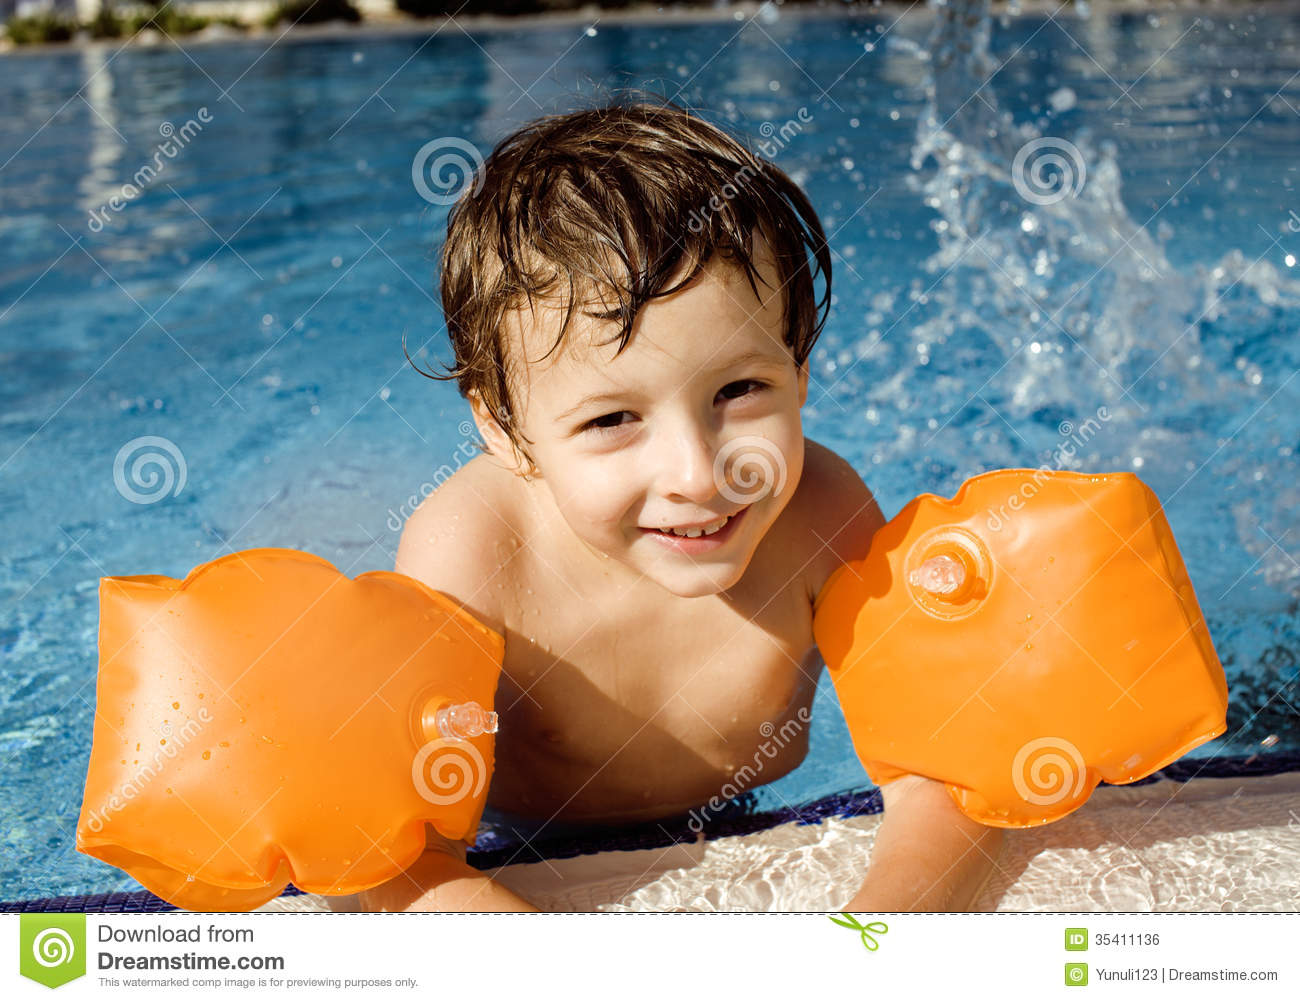 Little Cute Boy In Swimming Pool Royalty Free Stock Image - Image ...